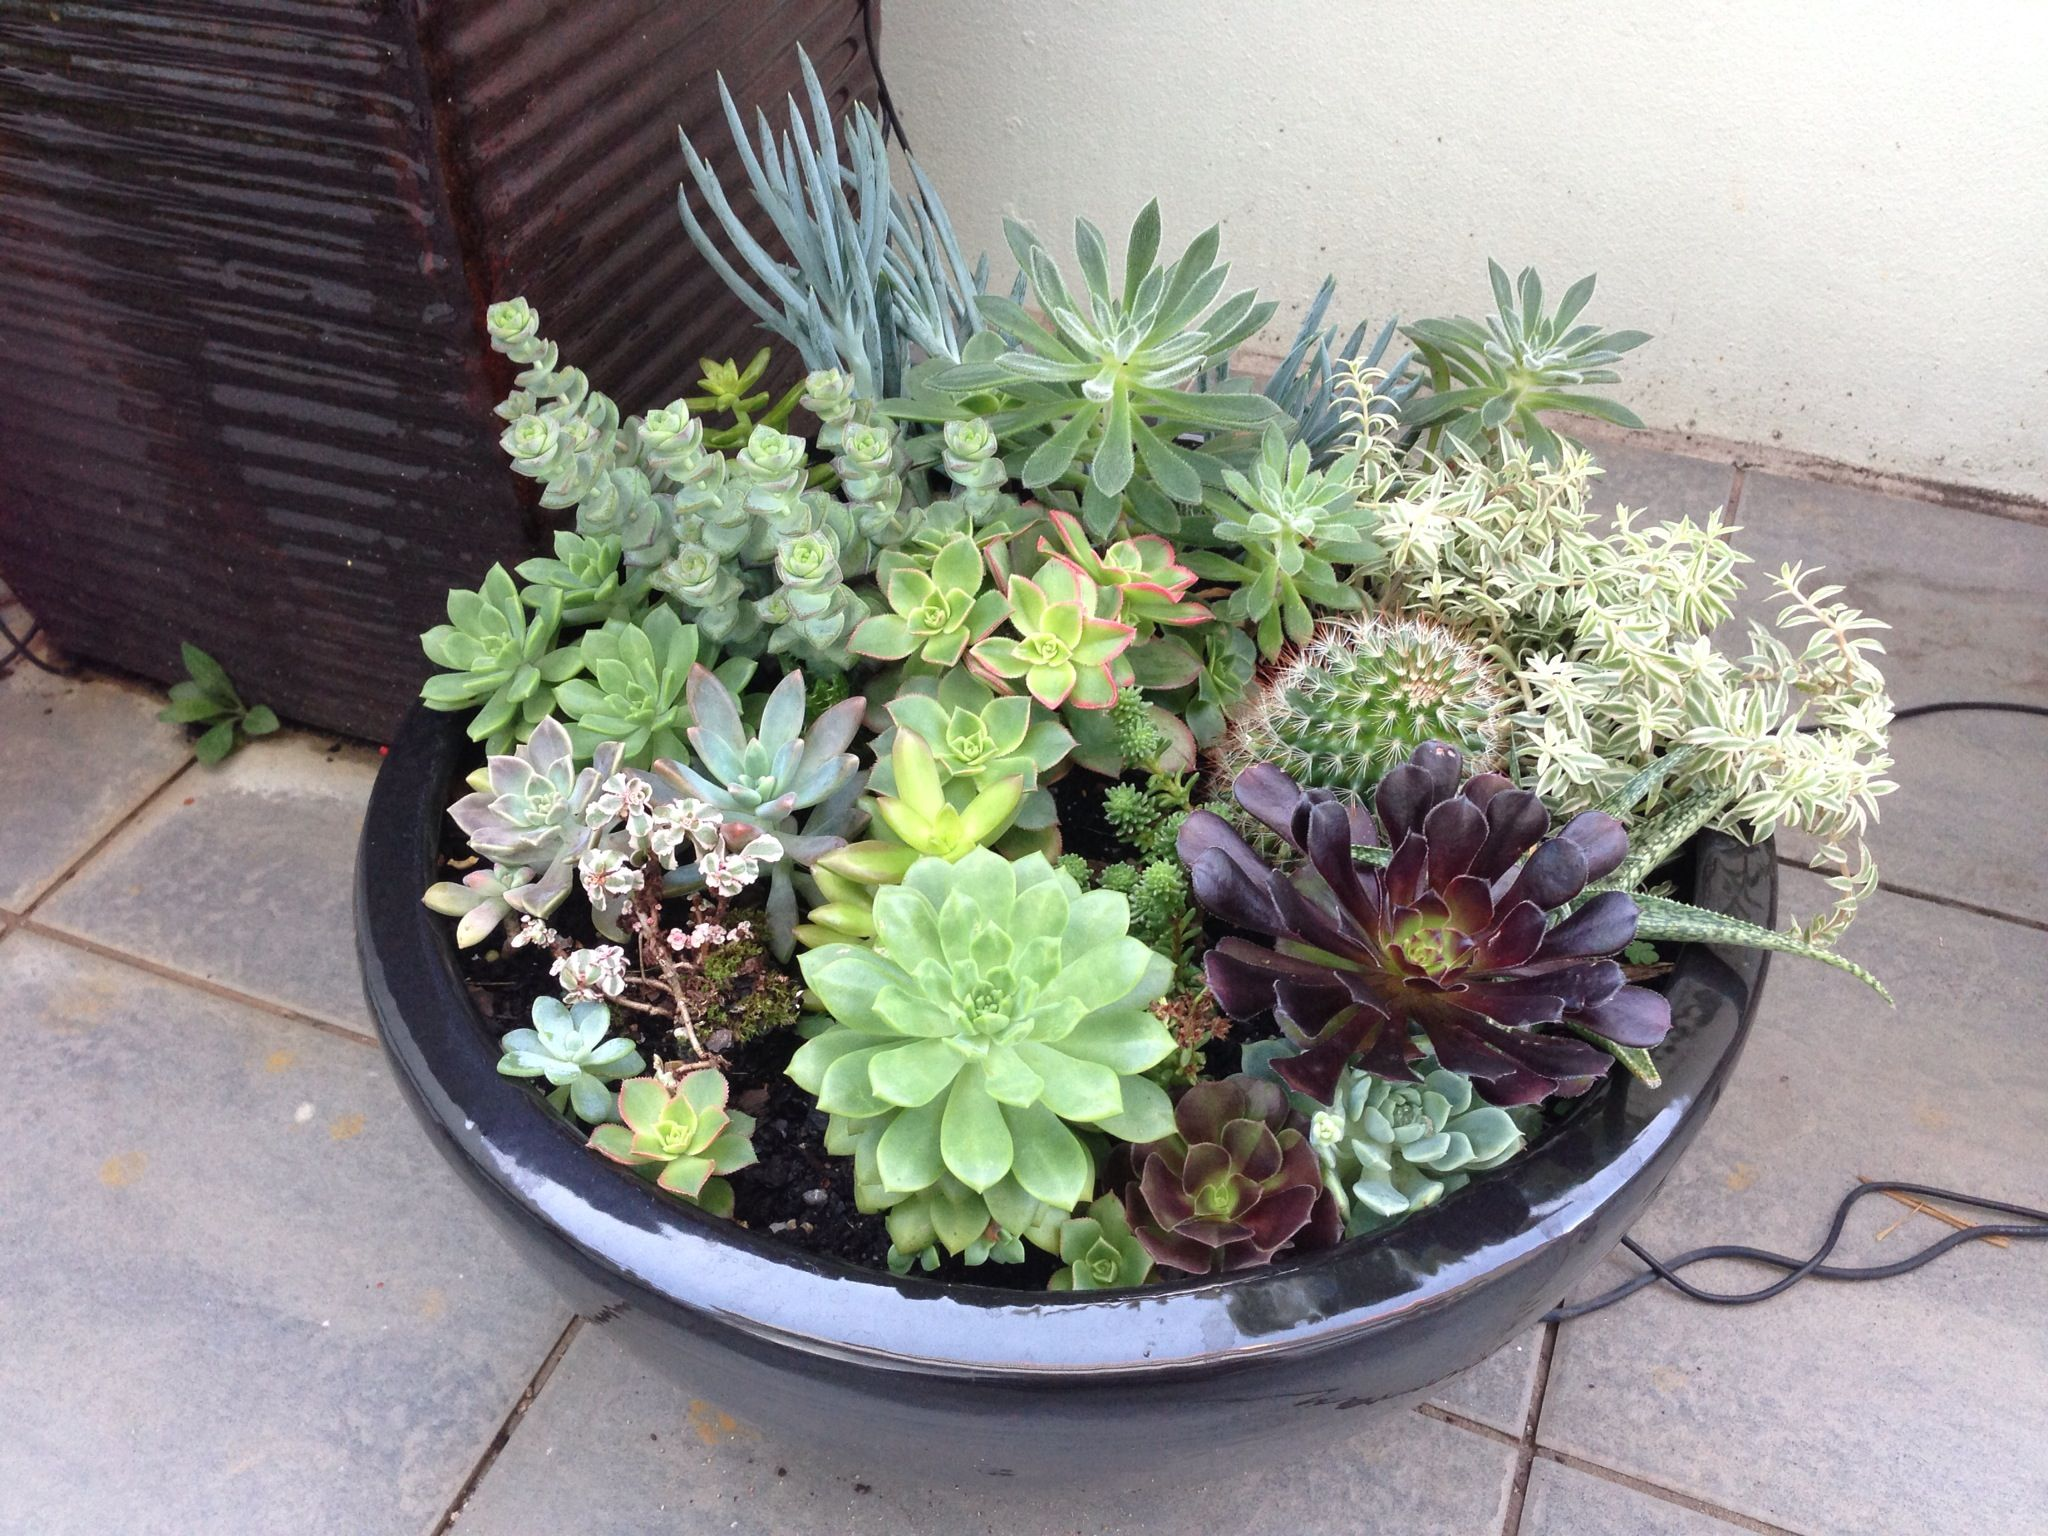 Succulent garden flowers plants arrangements trees for Garden arrangement